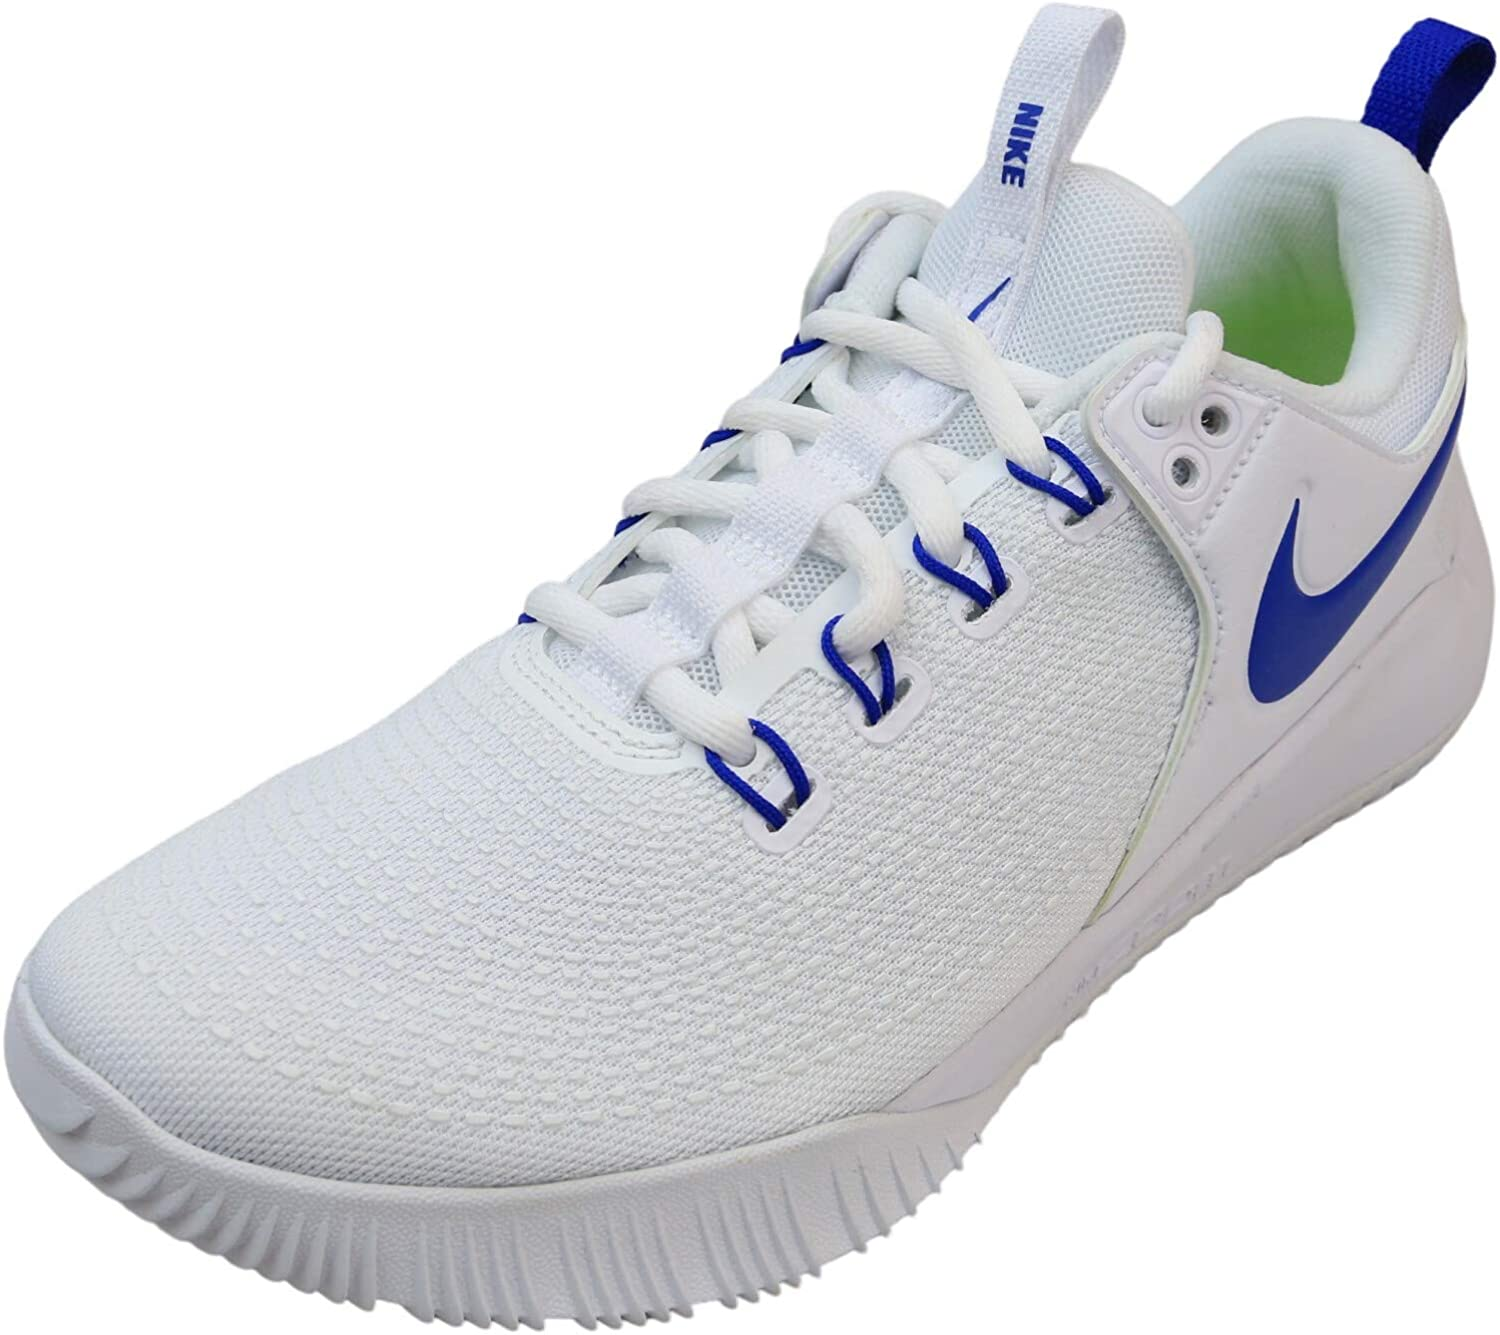 Nike Womens Zoom Hyperace Volleyball 2 Shoe Discount mail order Popularity